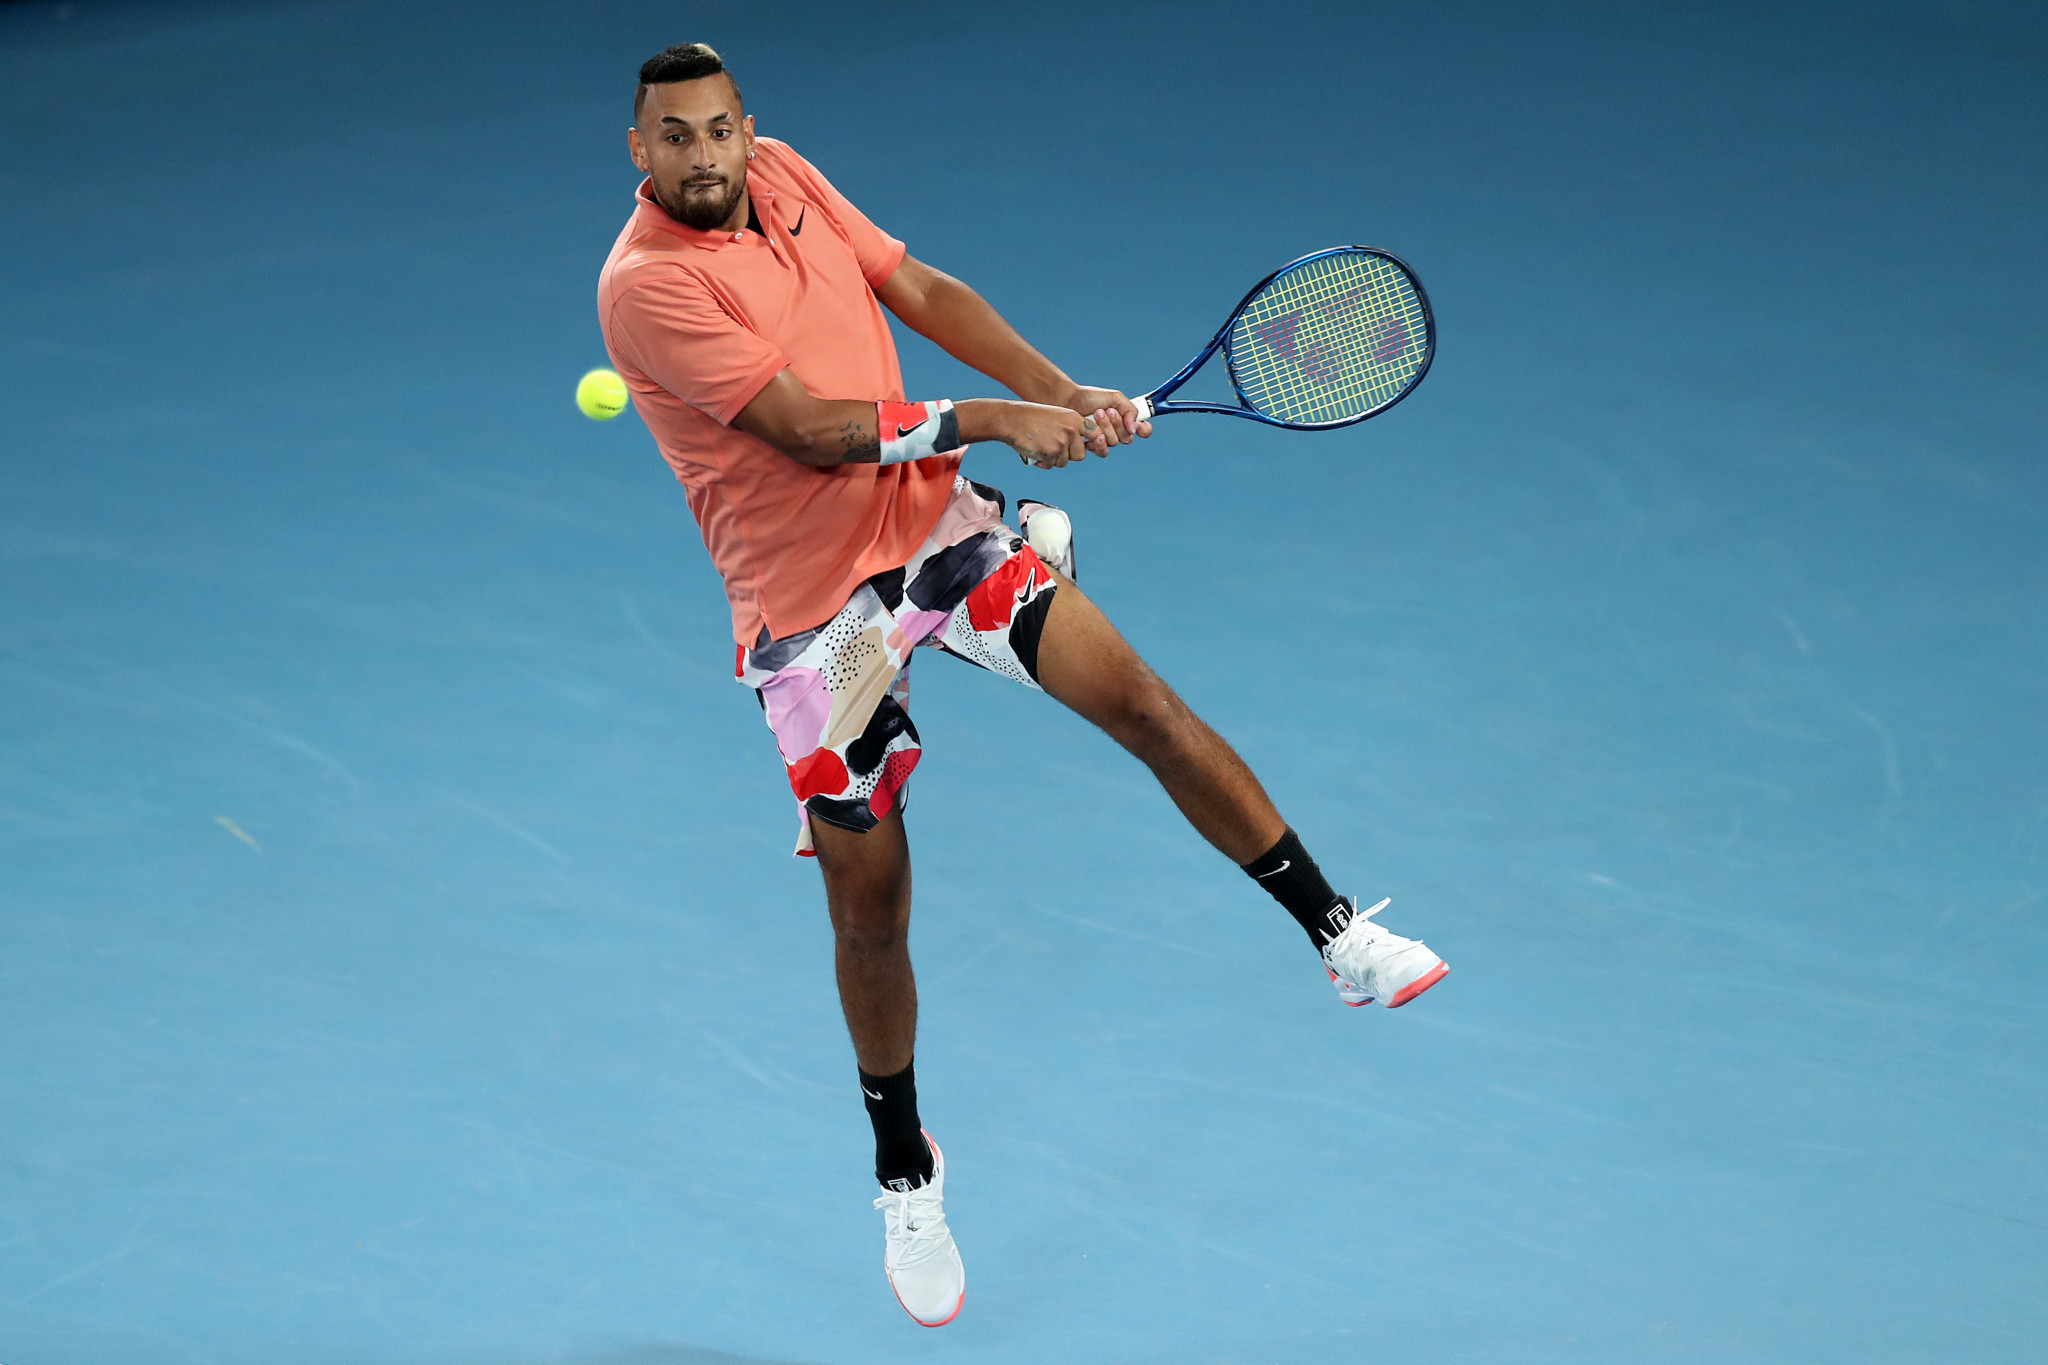 Kyrgios announces intention to compete at Tokyo 2020 after missing Rio 2016 due to AOC bust-up